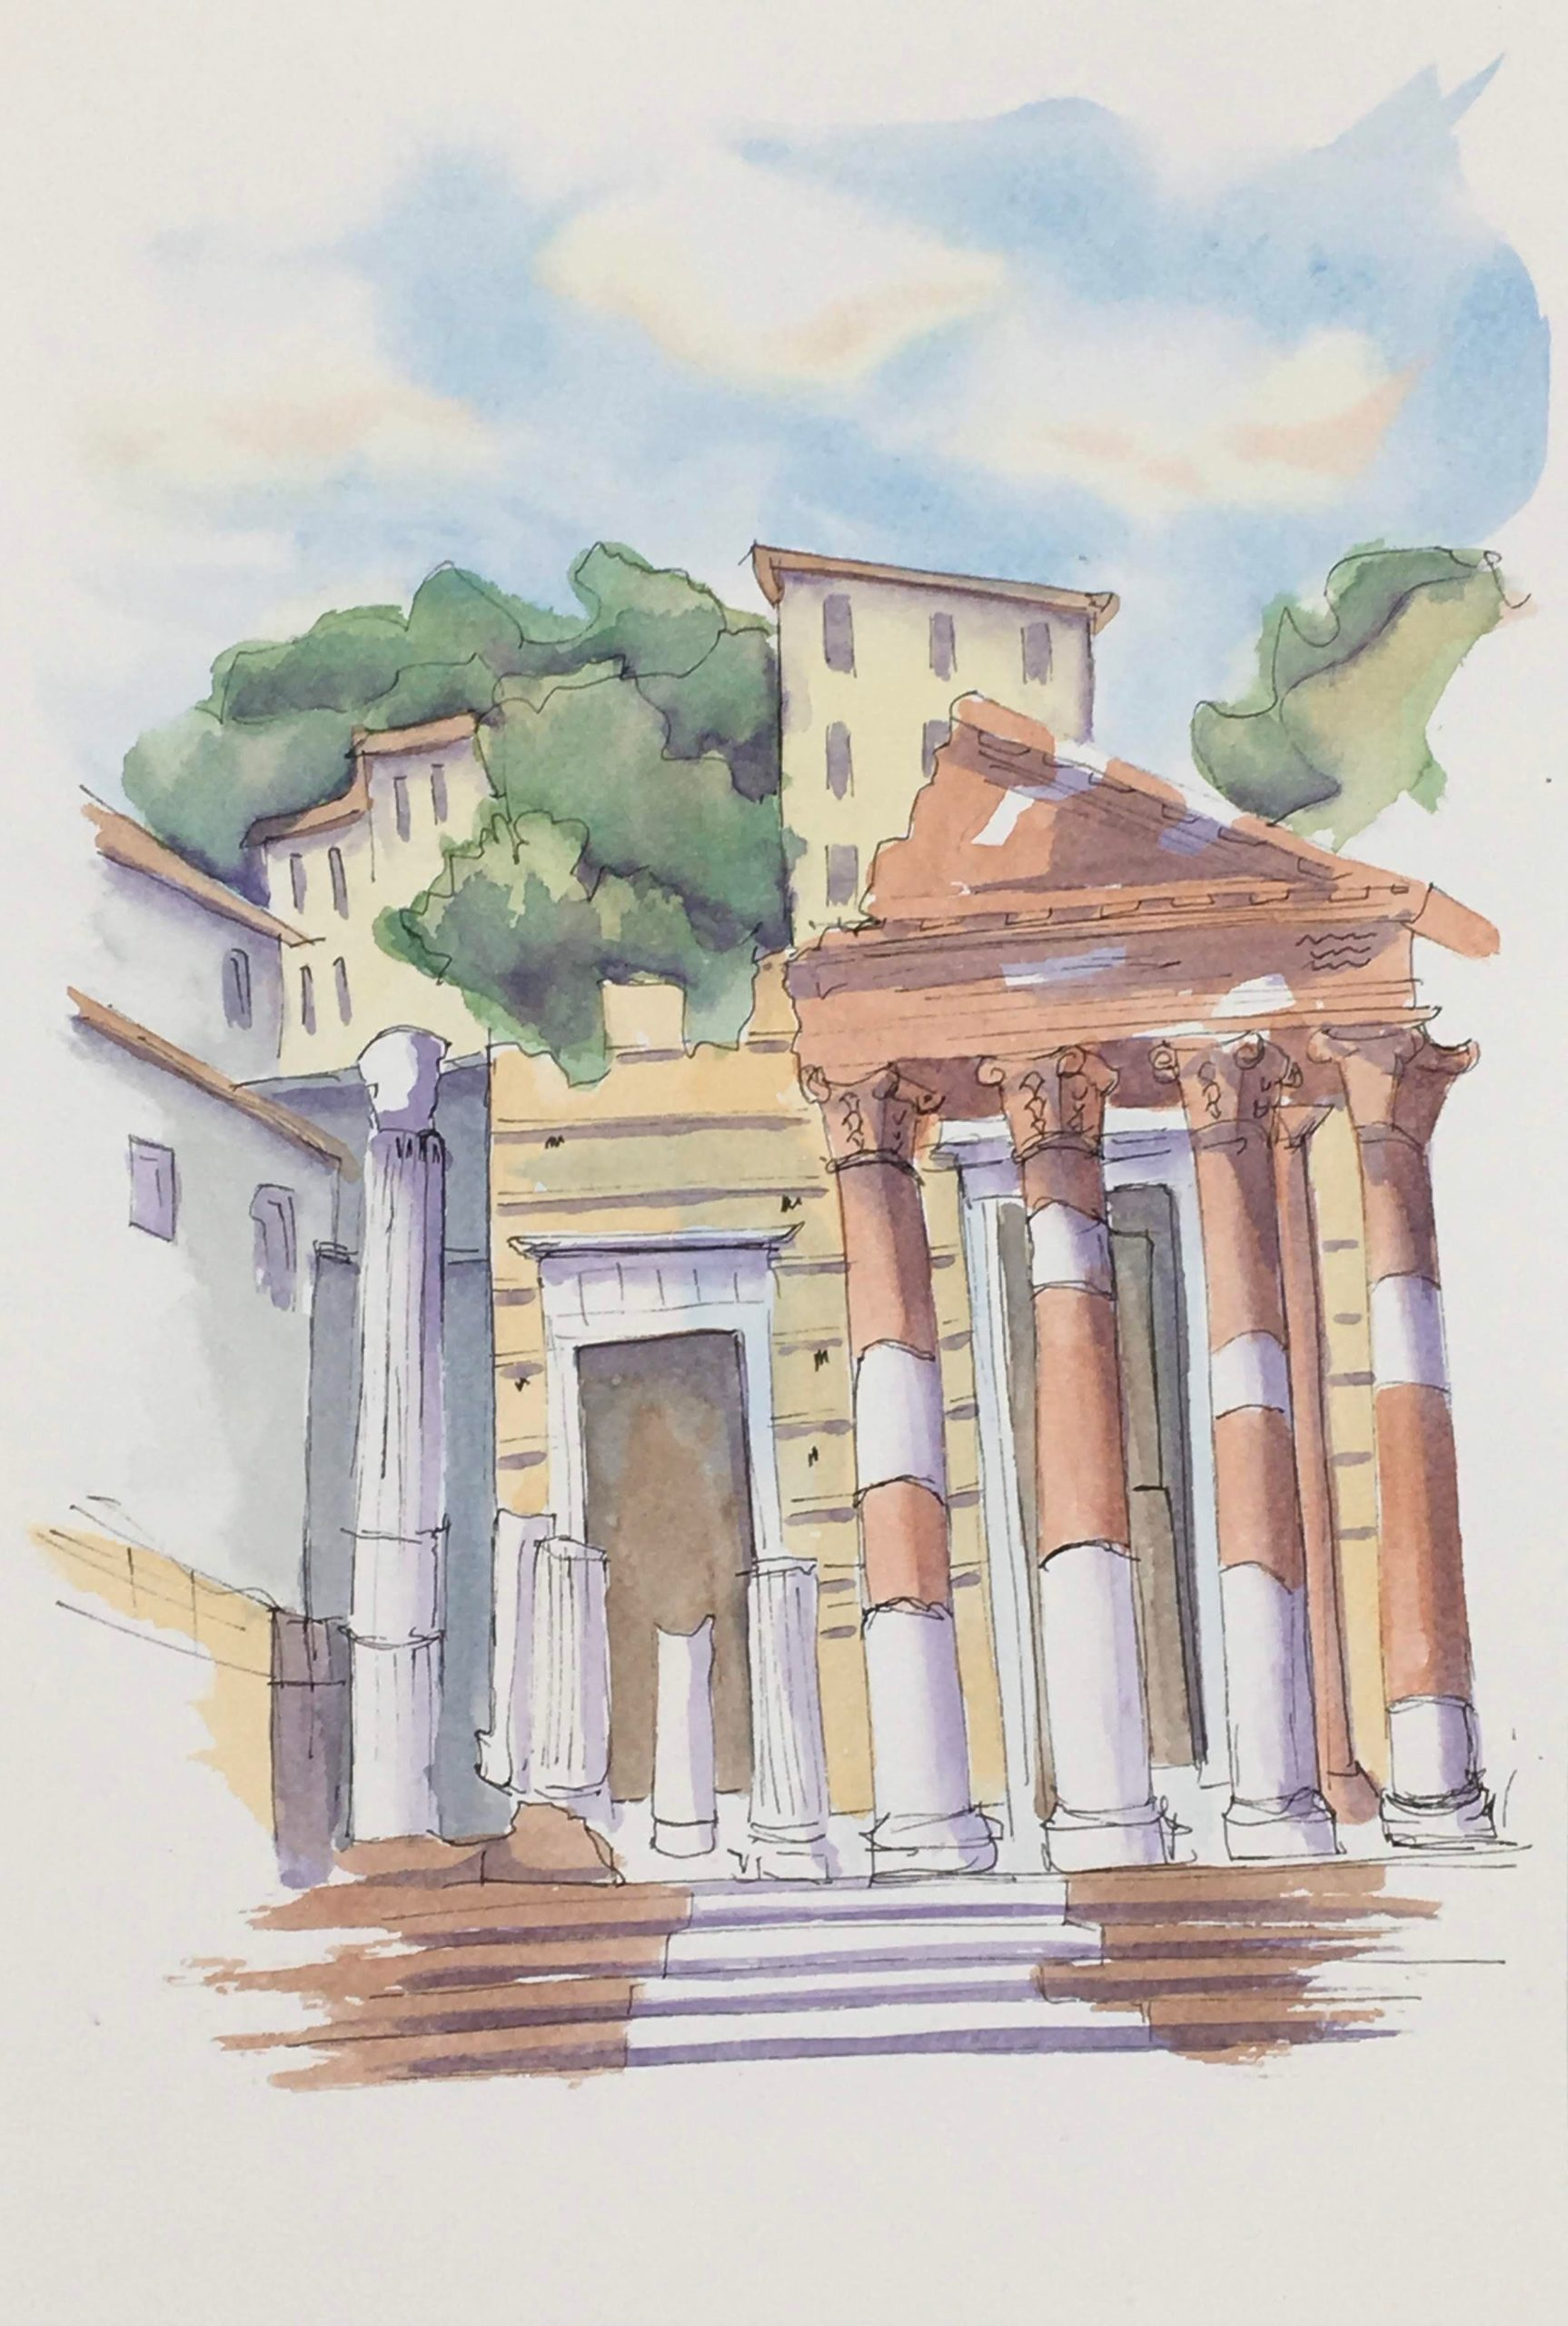 Painting of the Archeological Park of Brescia